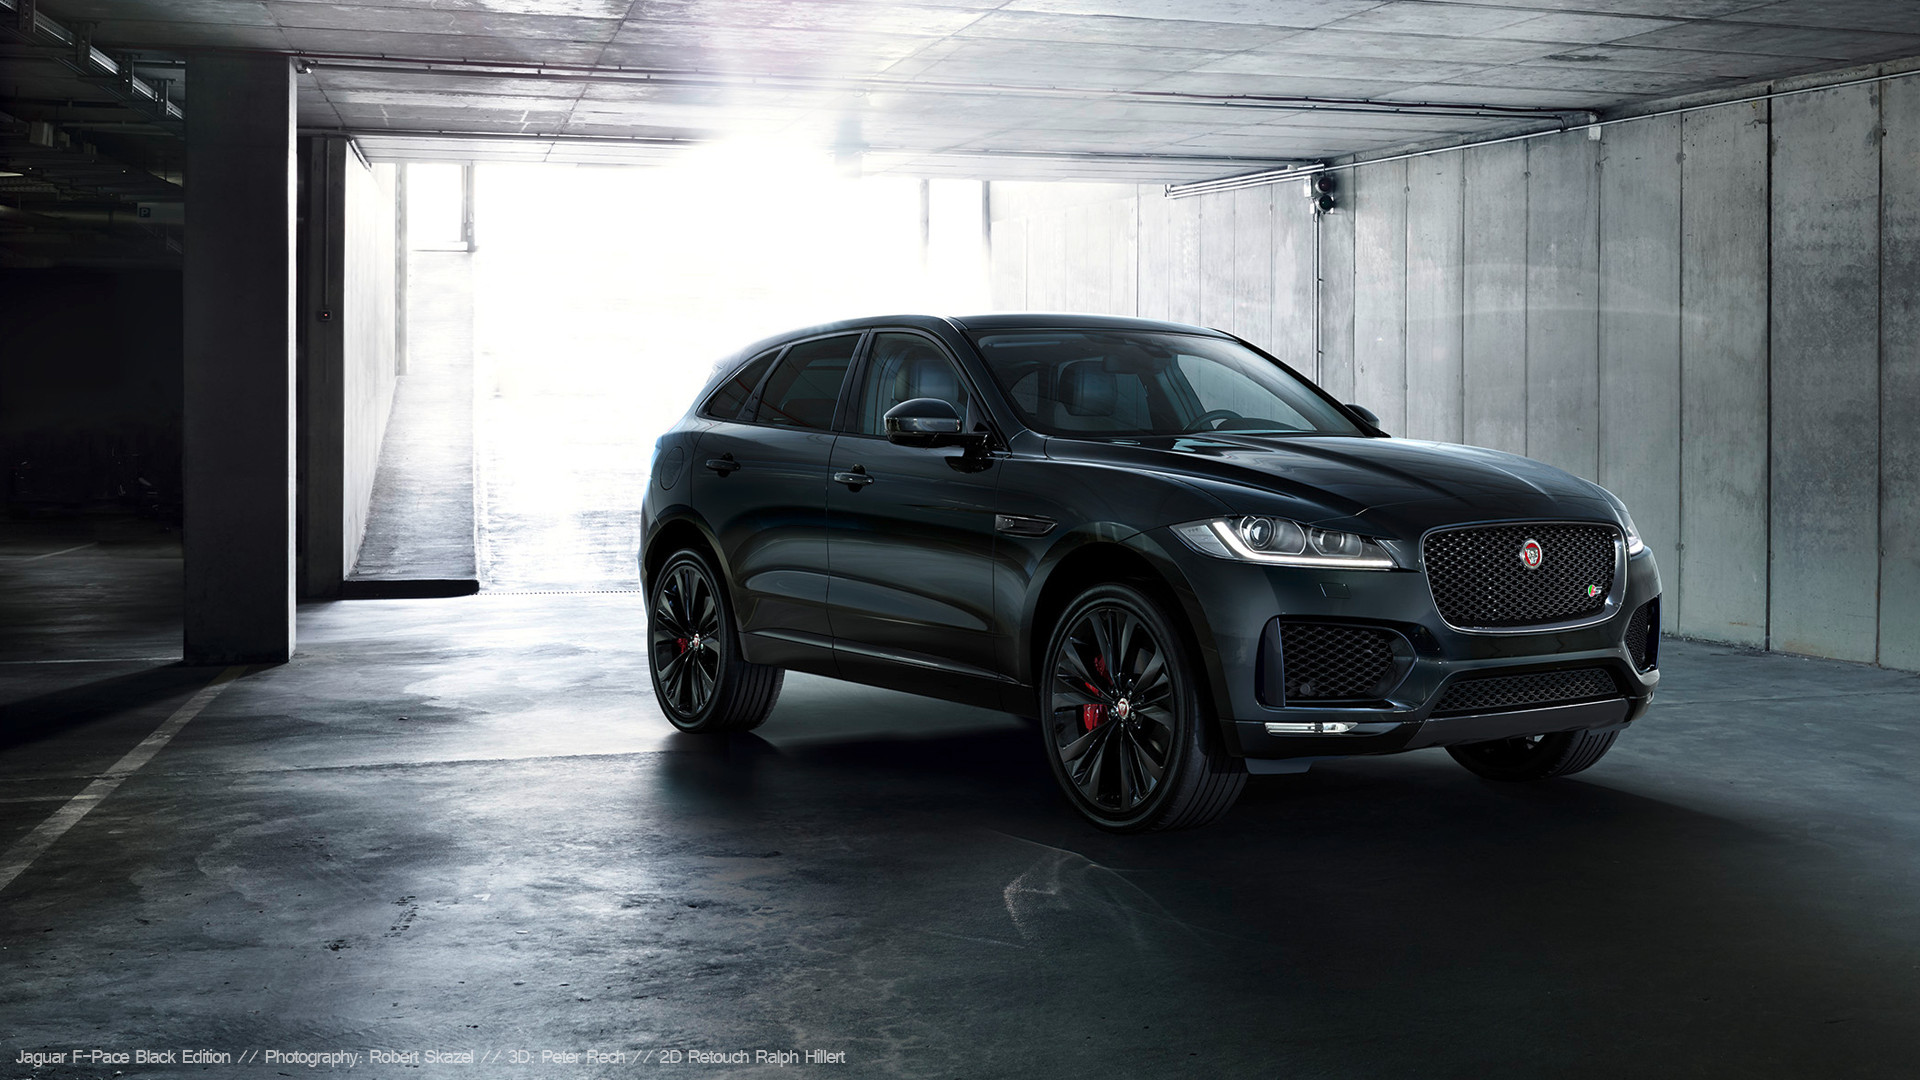 JLR_FPace_BlackEdition.jpg